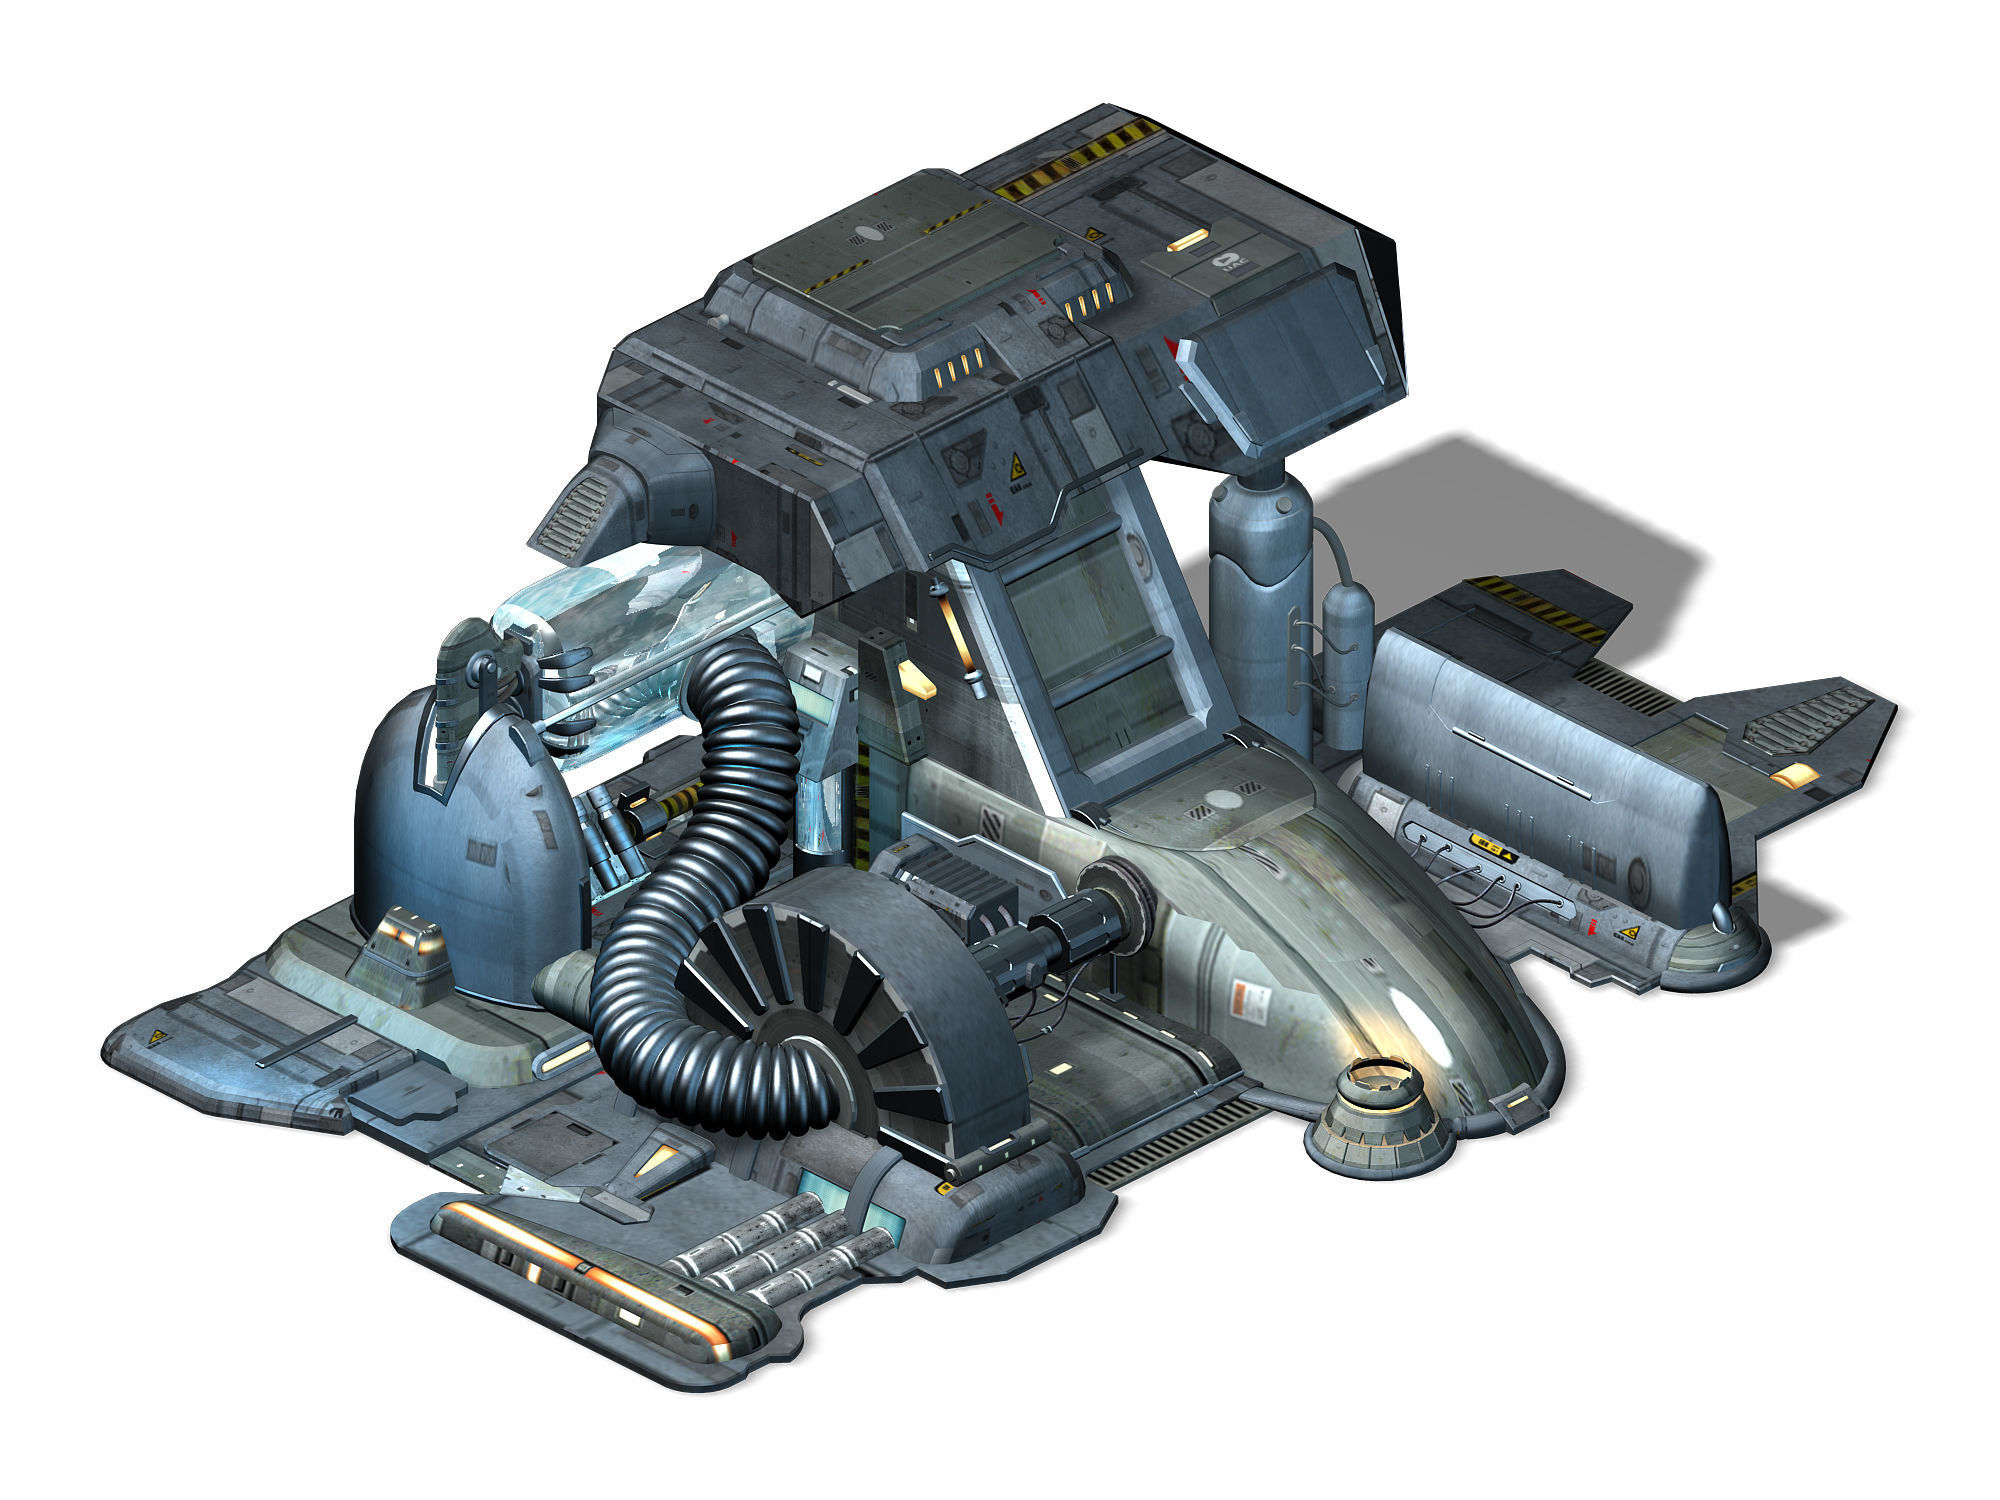 Machinery - Spacecraft - Functional Objects 03